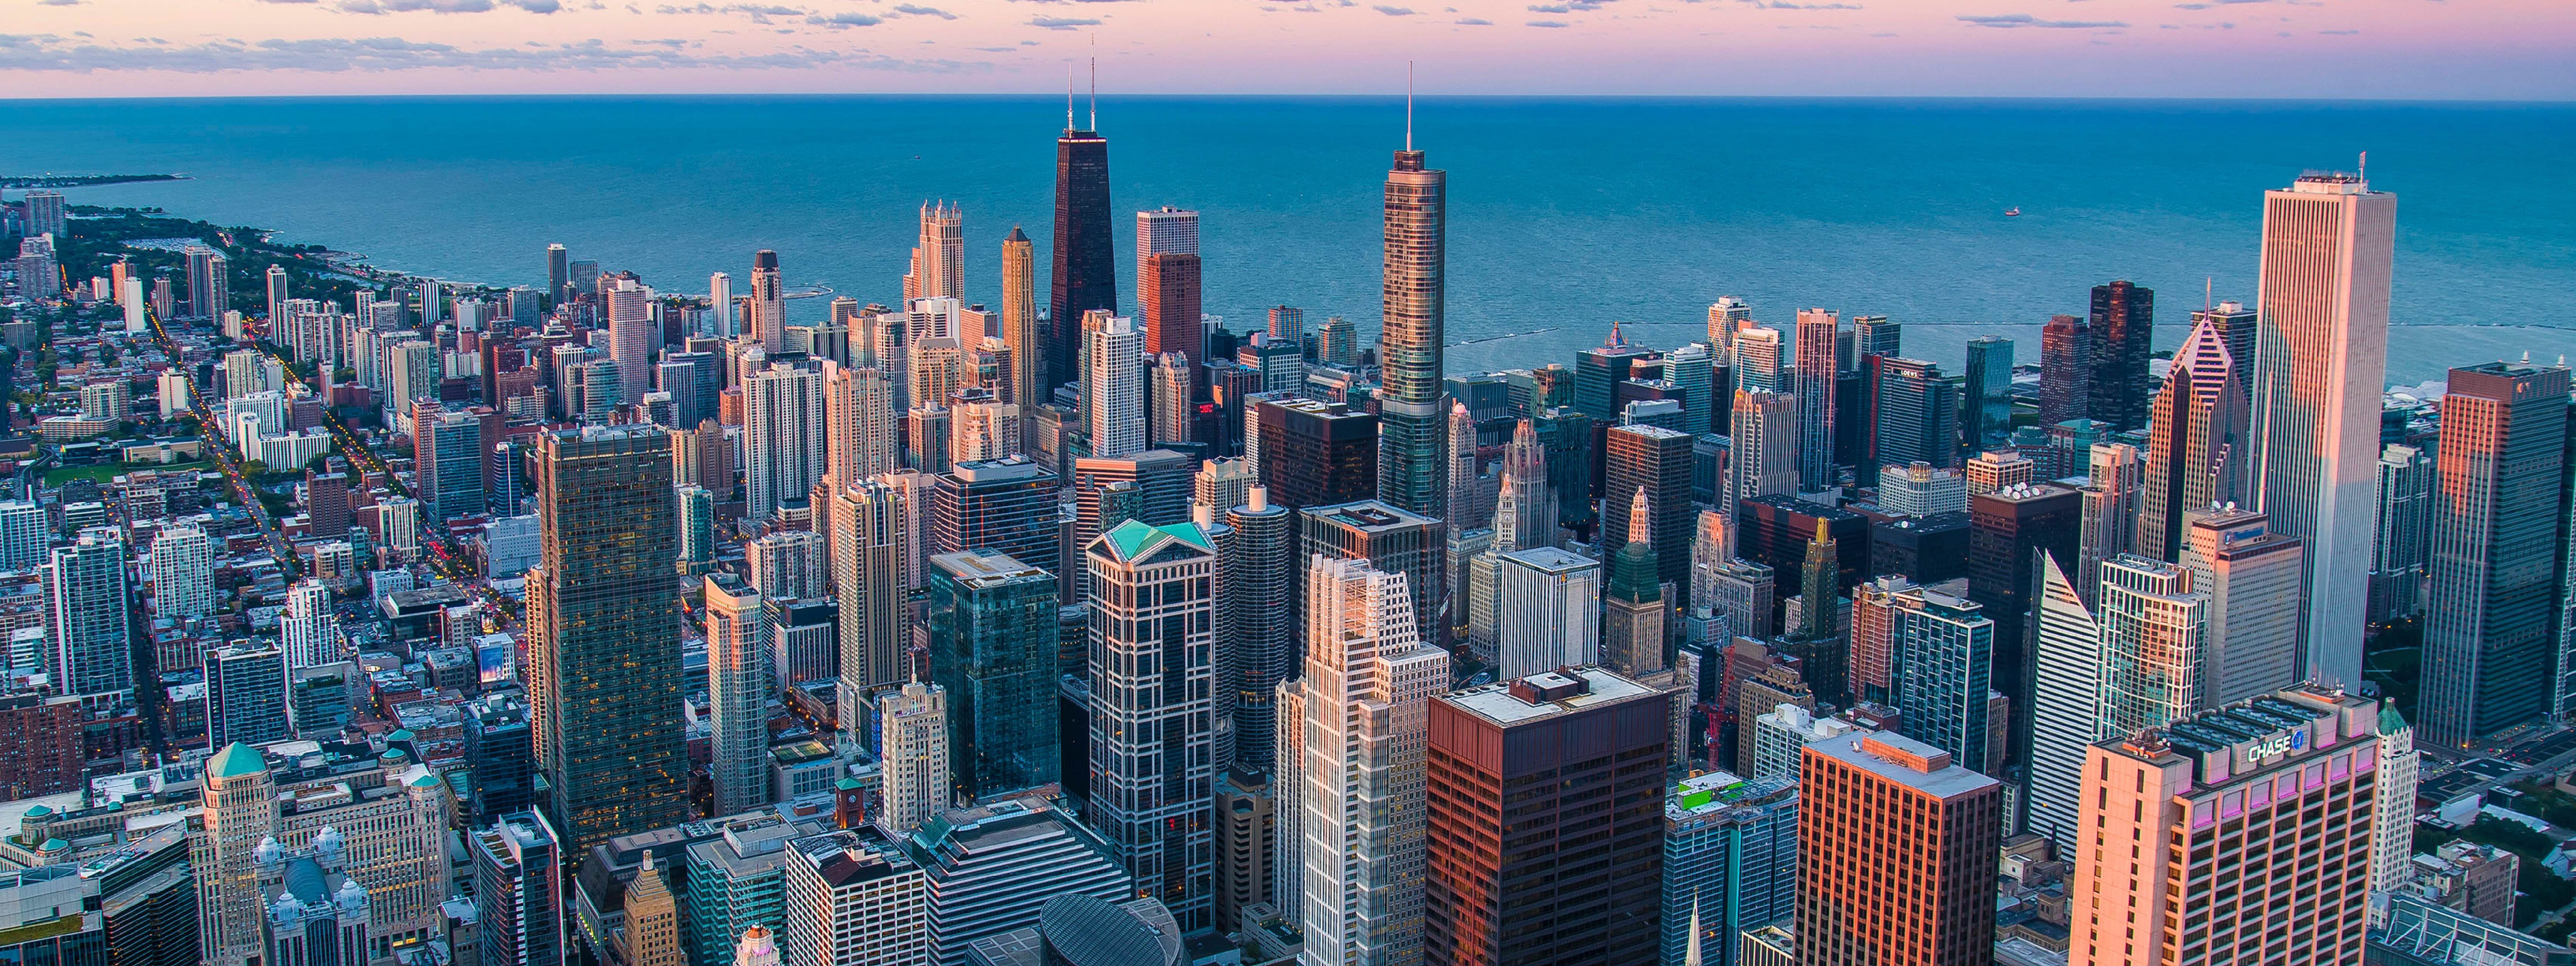 Romance in Chicago: 4 Neighborhoods for Valentine's Day Celebrations